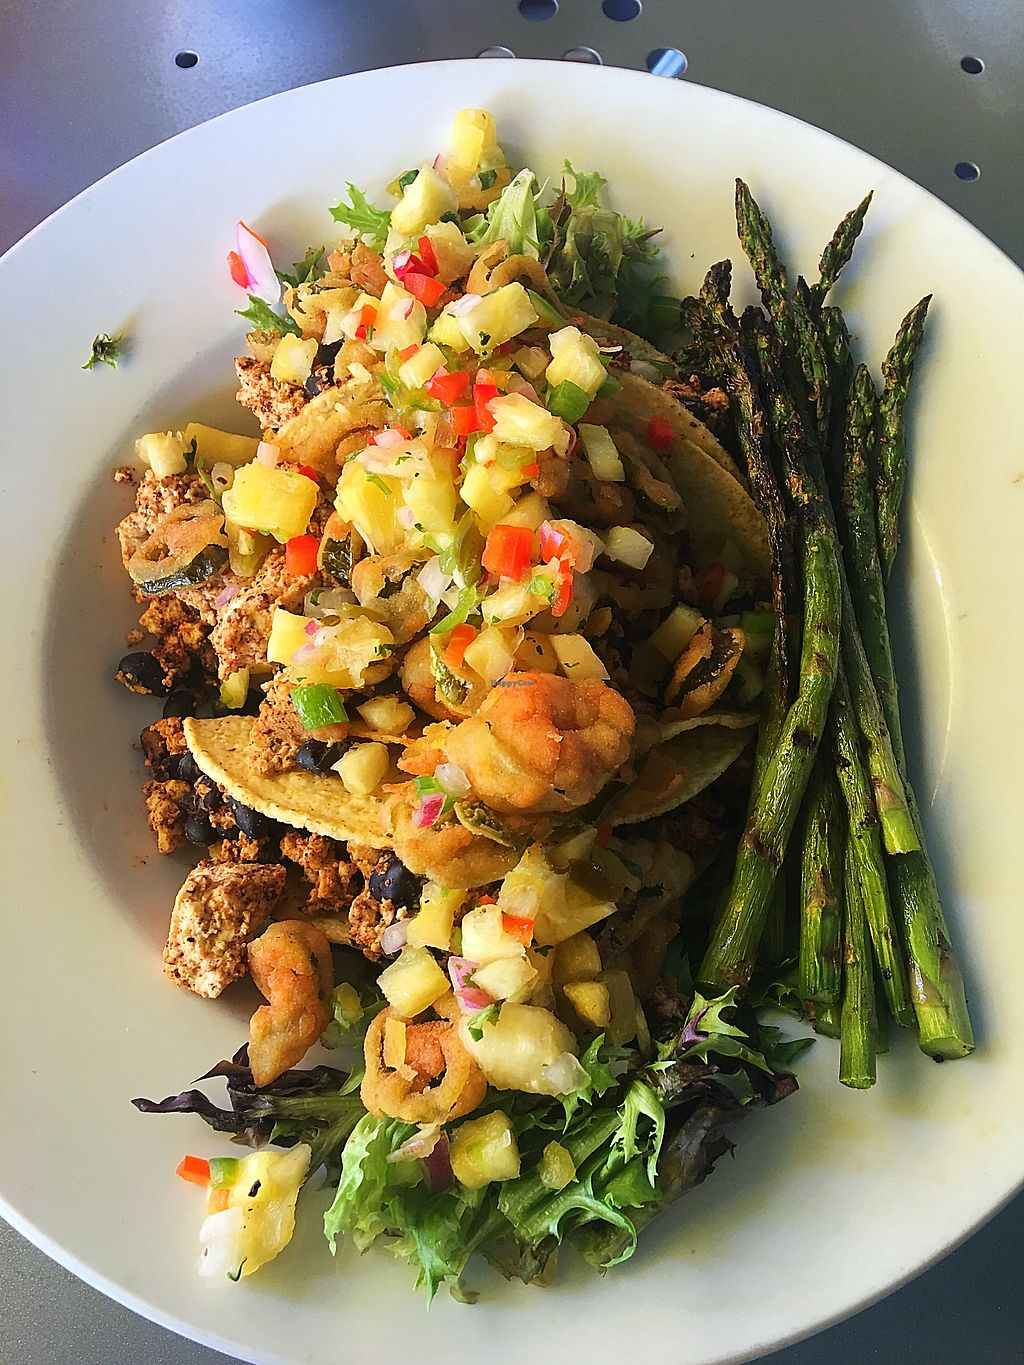 """Photo of The George on the Riverwalk  by <a href=""""/members/profile/HeatherArmstrong"""">HeatherArmstrong</a> <br/>Tofu Tacos  <br/> October 1, 2017  - <a href='/contact/abuse/image/97120/310798'>Report</a>"""